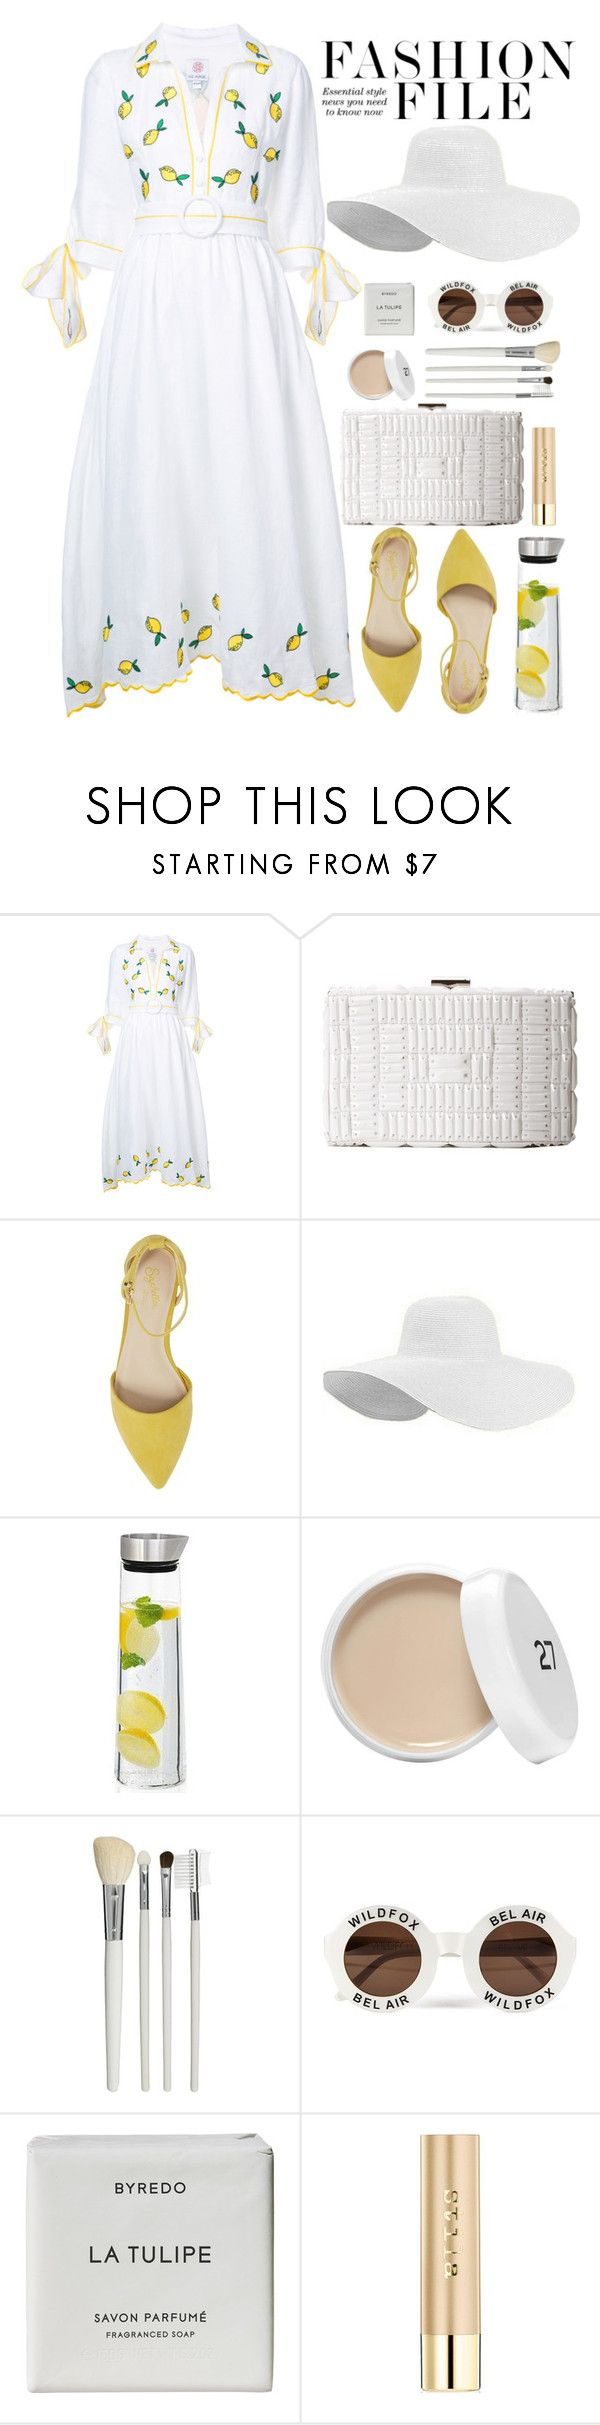 """Lemon Dress"" by crblackflag ❤ liked on Polyvore featuring Gül Hürgel, BCBGMAXAZRIA, Seychelles, blomus, Cath Kidston, Wildfox, Byredo, Stila, yellowshoes and lemondress"